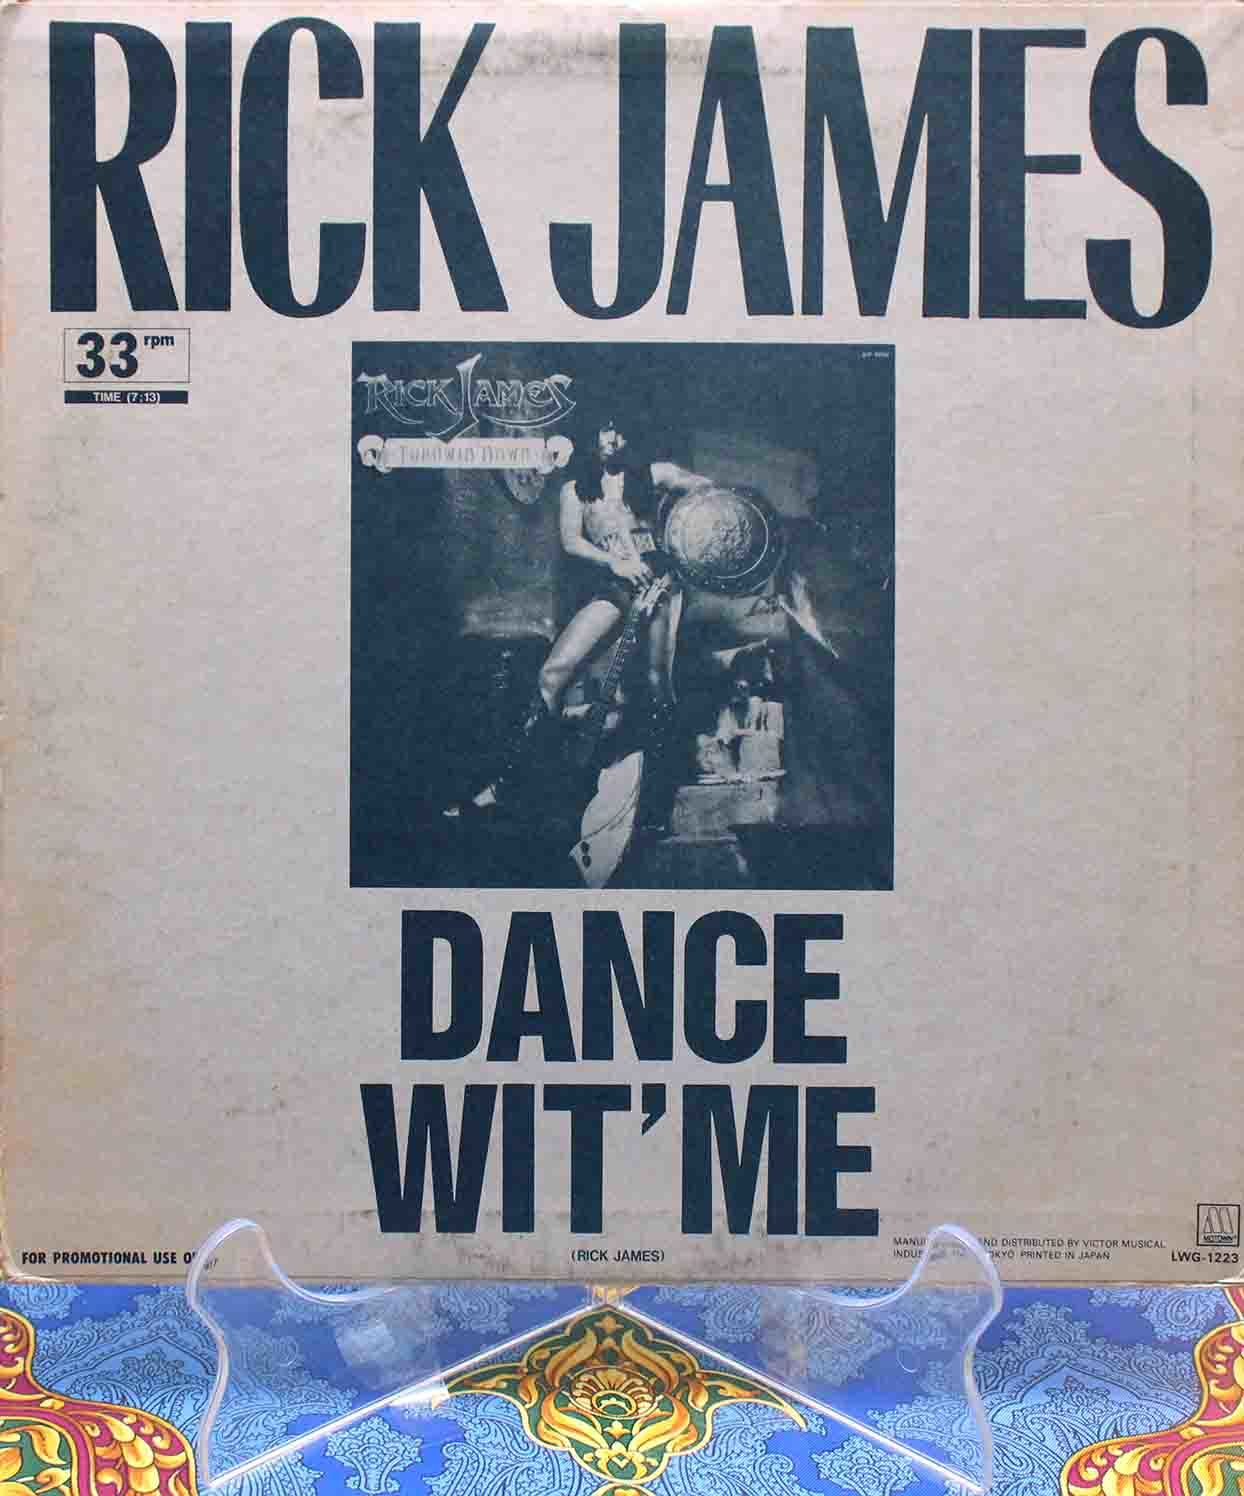 Rick James Dance Wit Me Japan 01